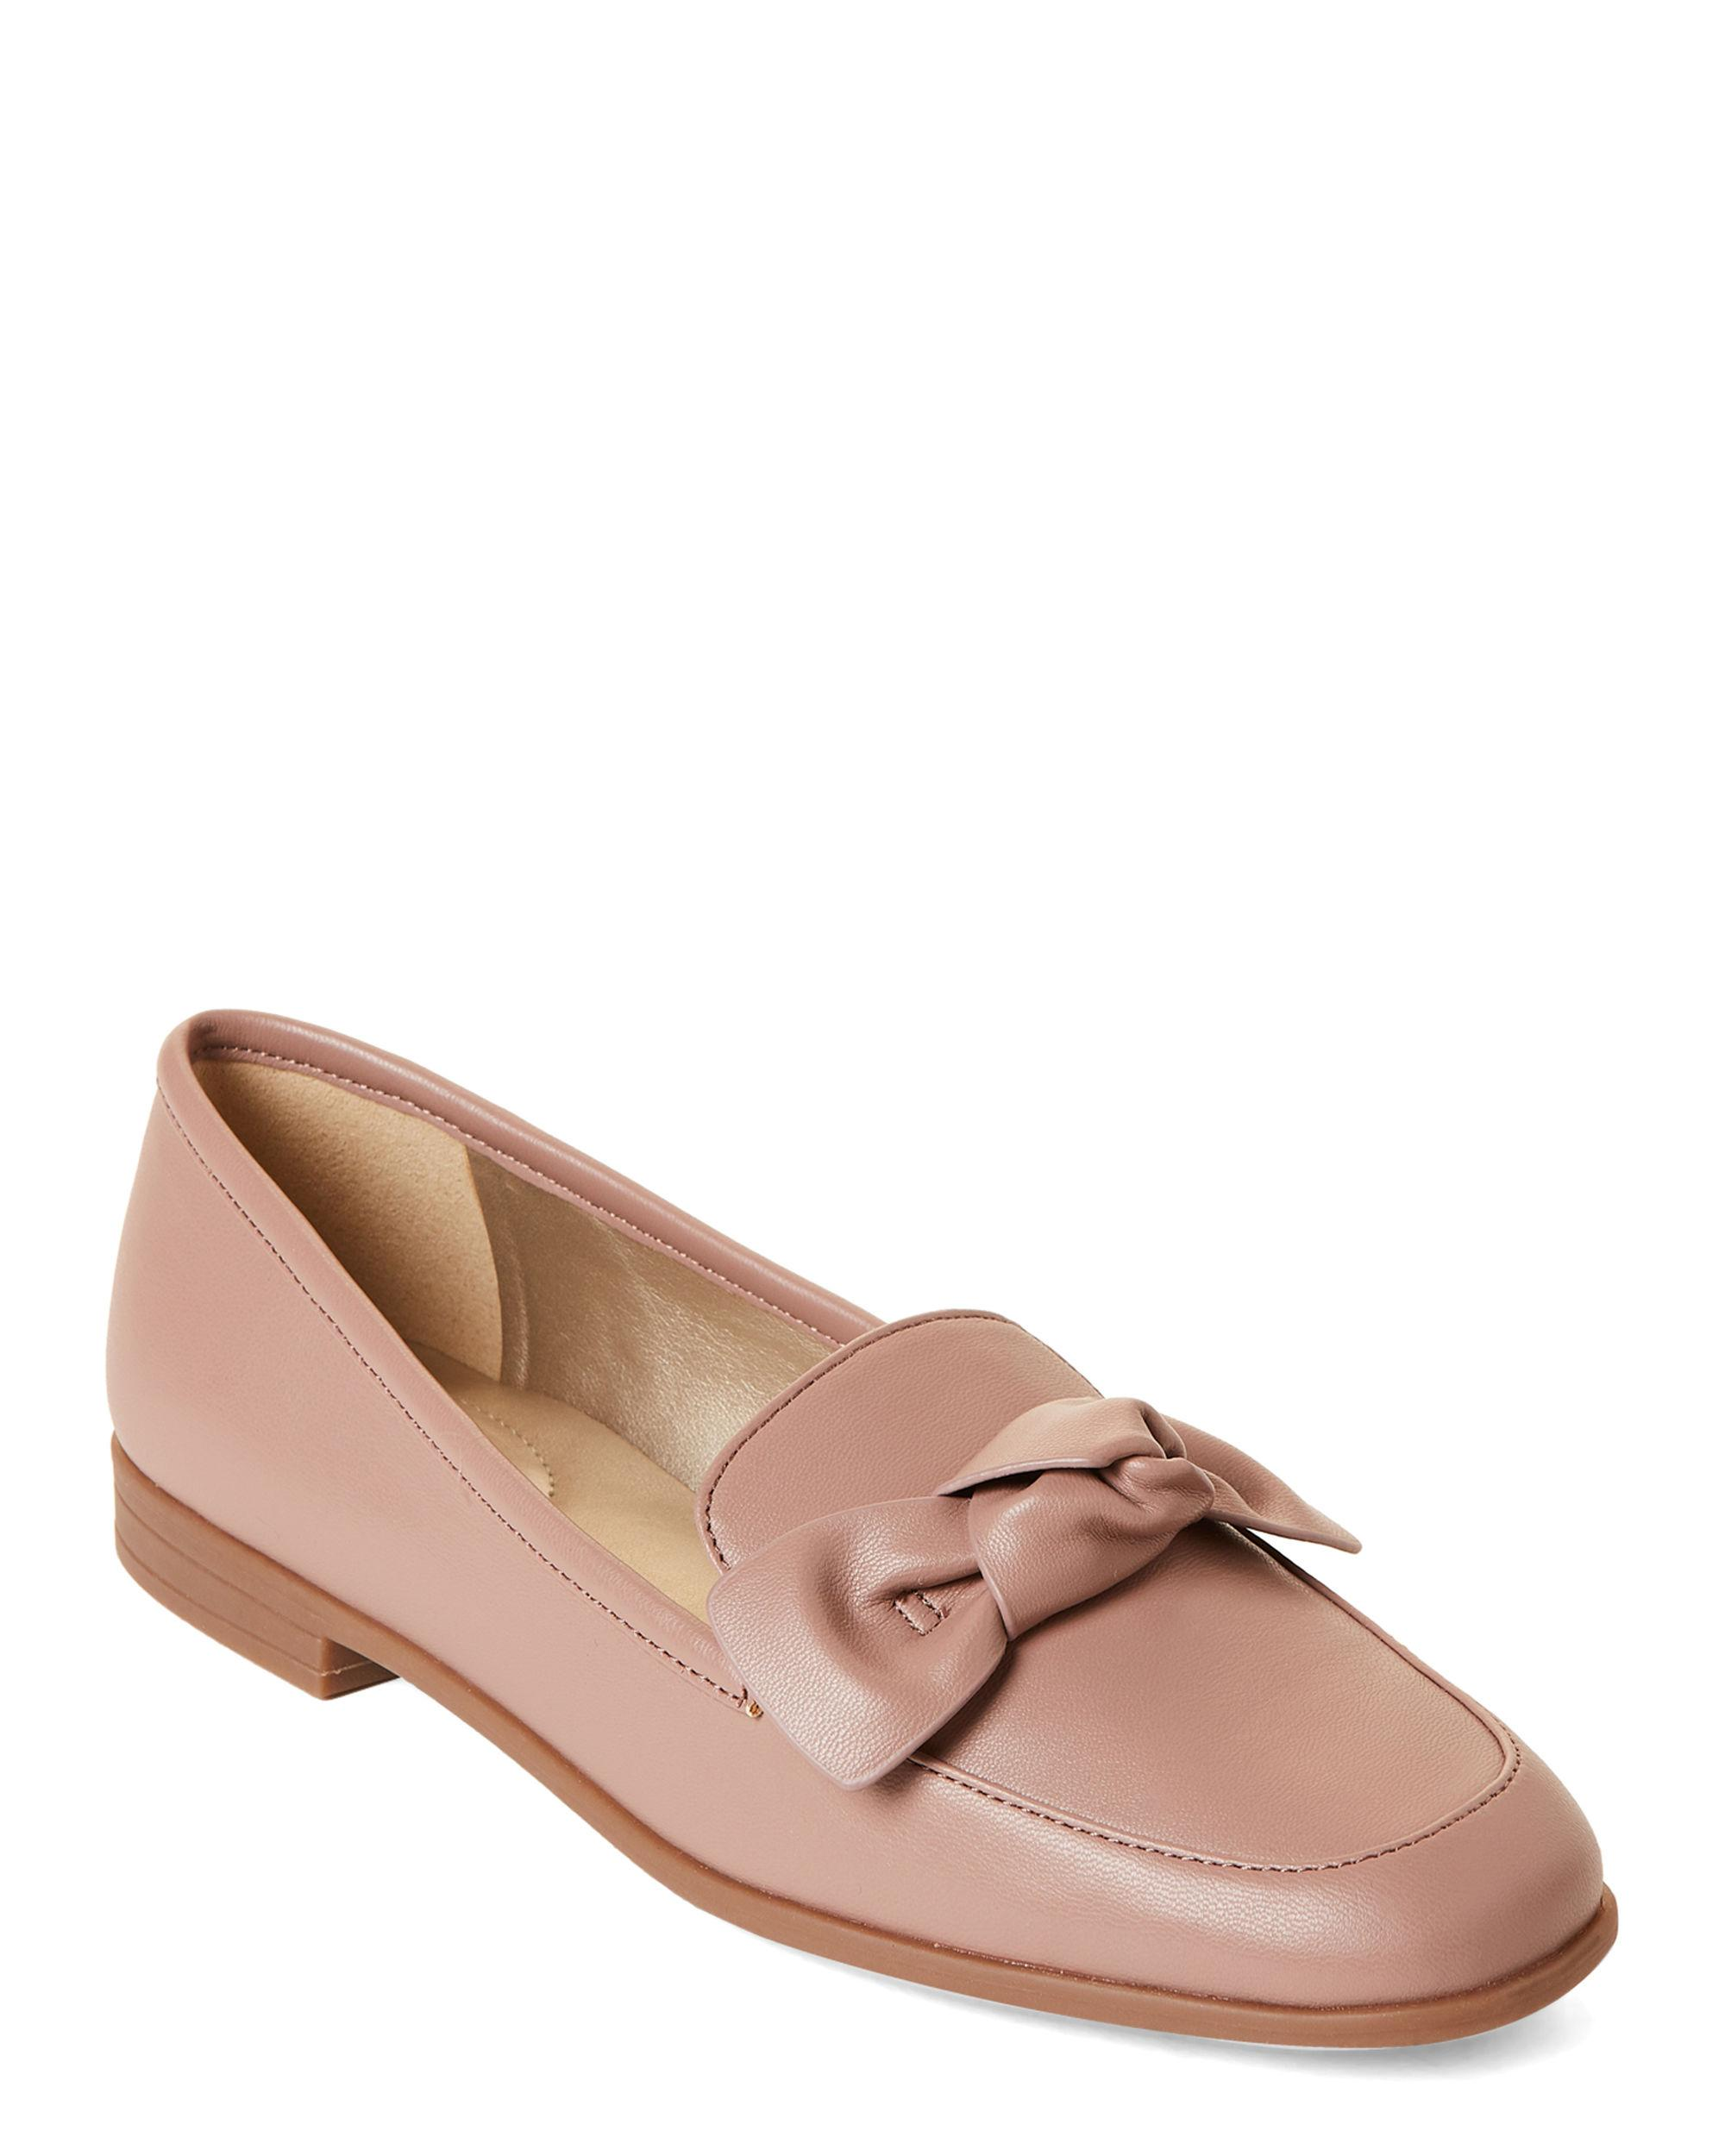 1e66d3967b4 Lyst - Bandolino Rose Bow Loafers in Pink